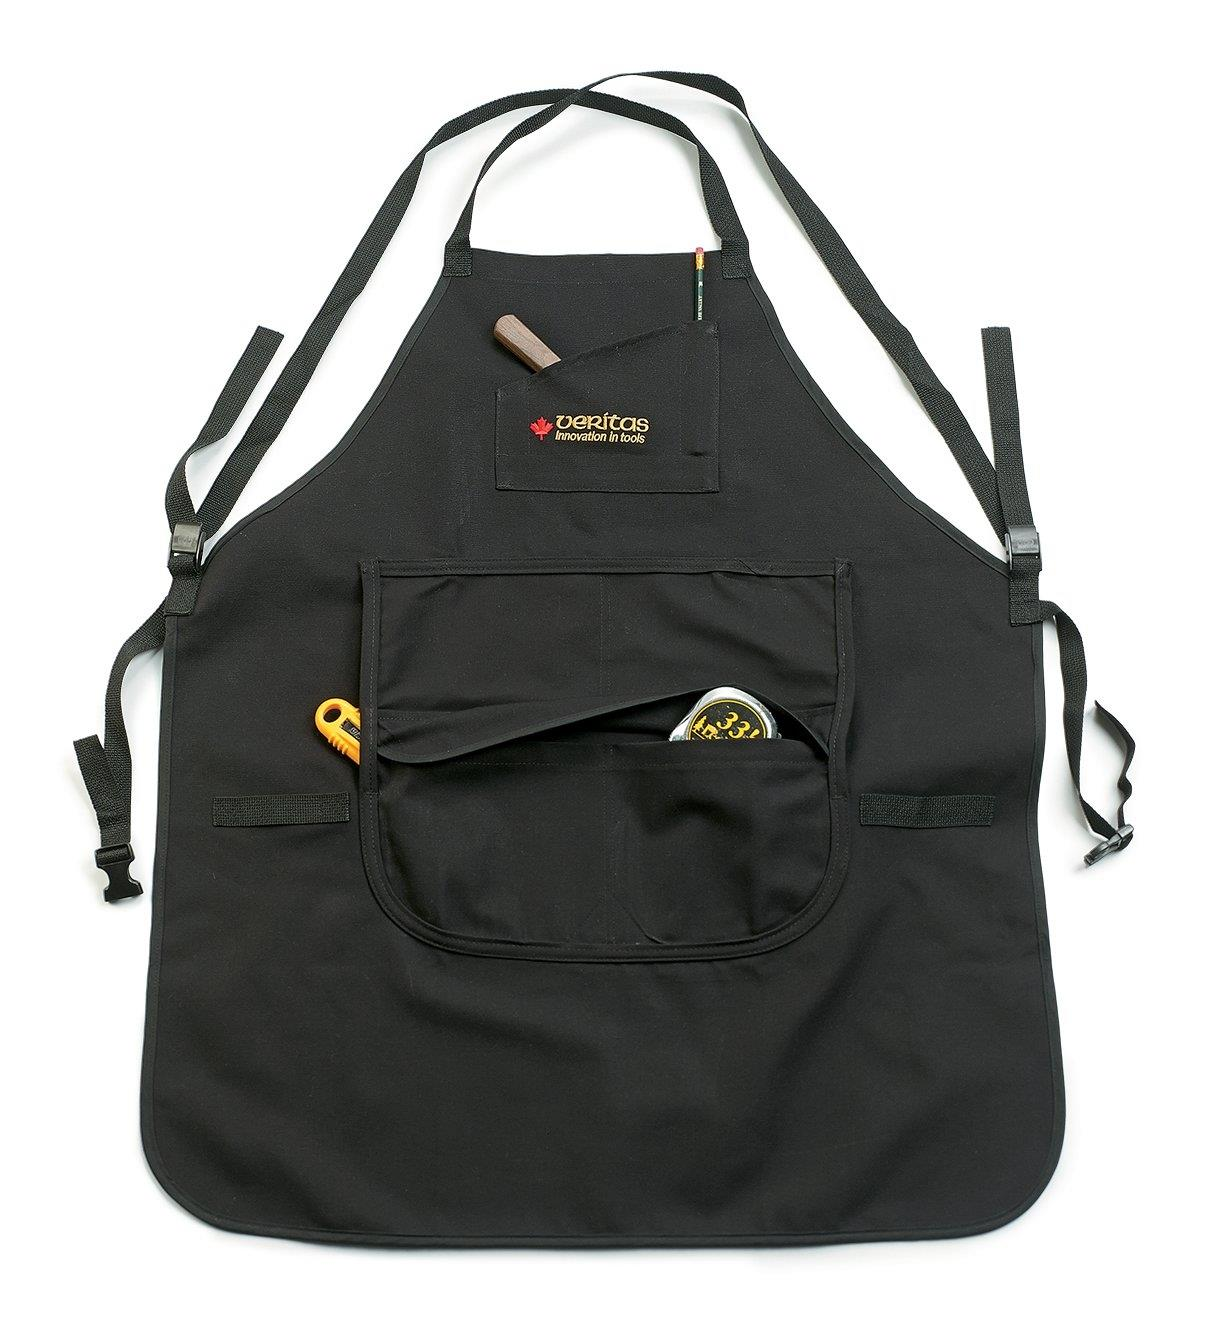 67K1010 - Large Veritas Canvas Apron